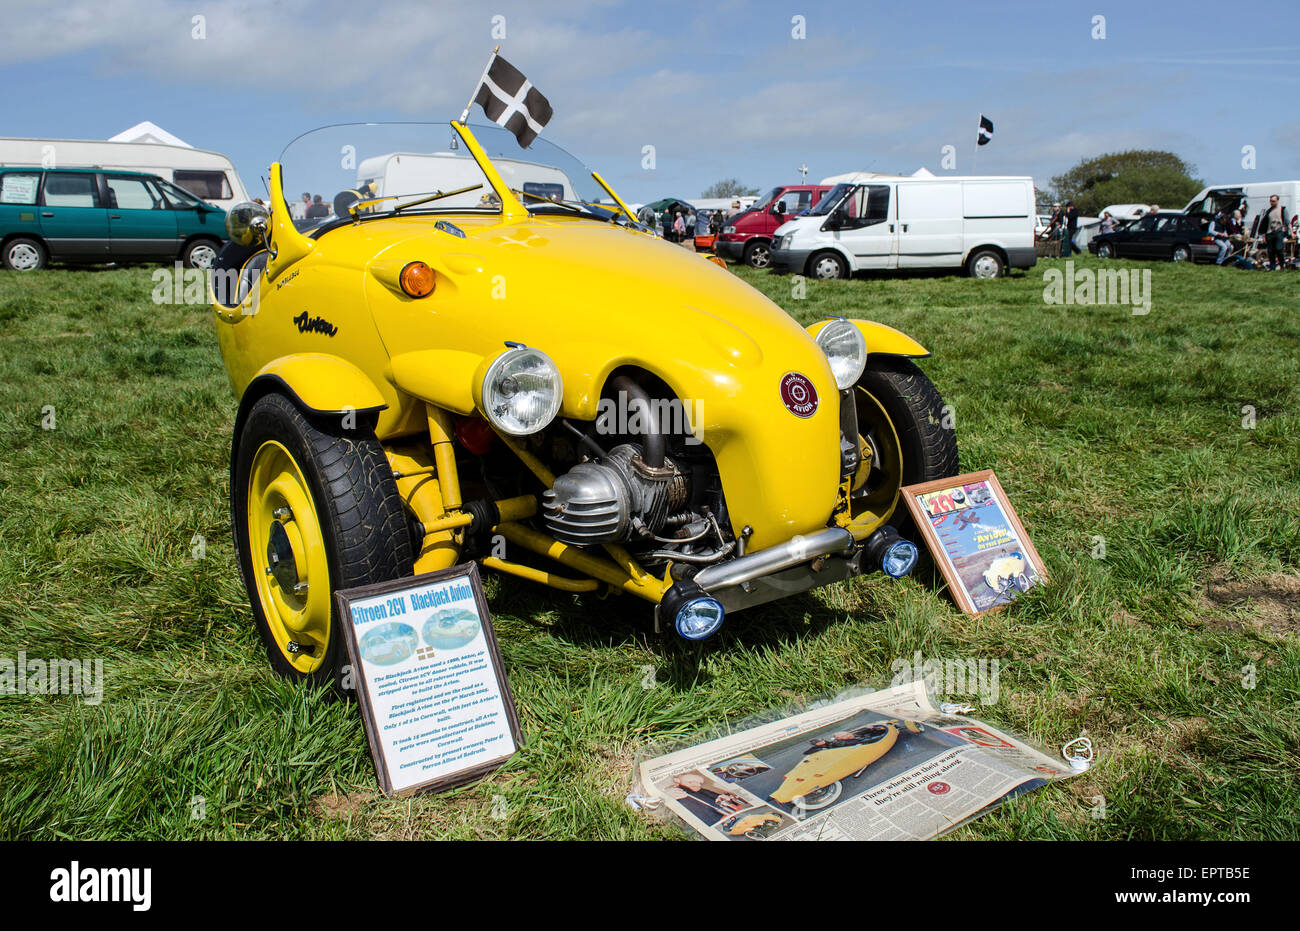 A Blackjack Avion kit car at a vintage vehicle rally in Cornwall, UK - Stock Image